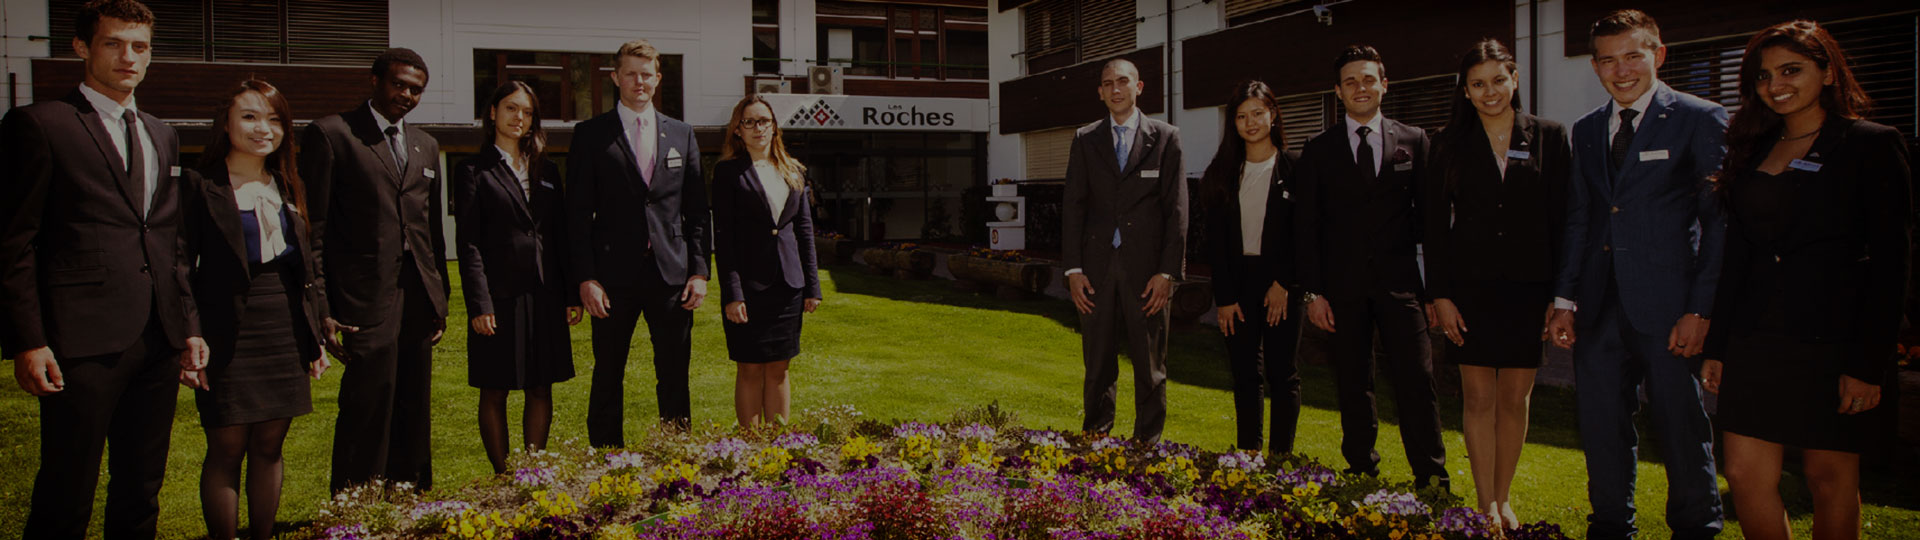 Les Roches Accepted Students